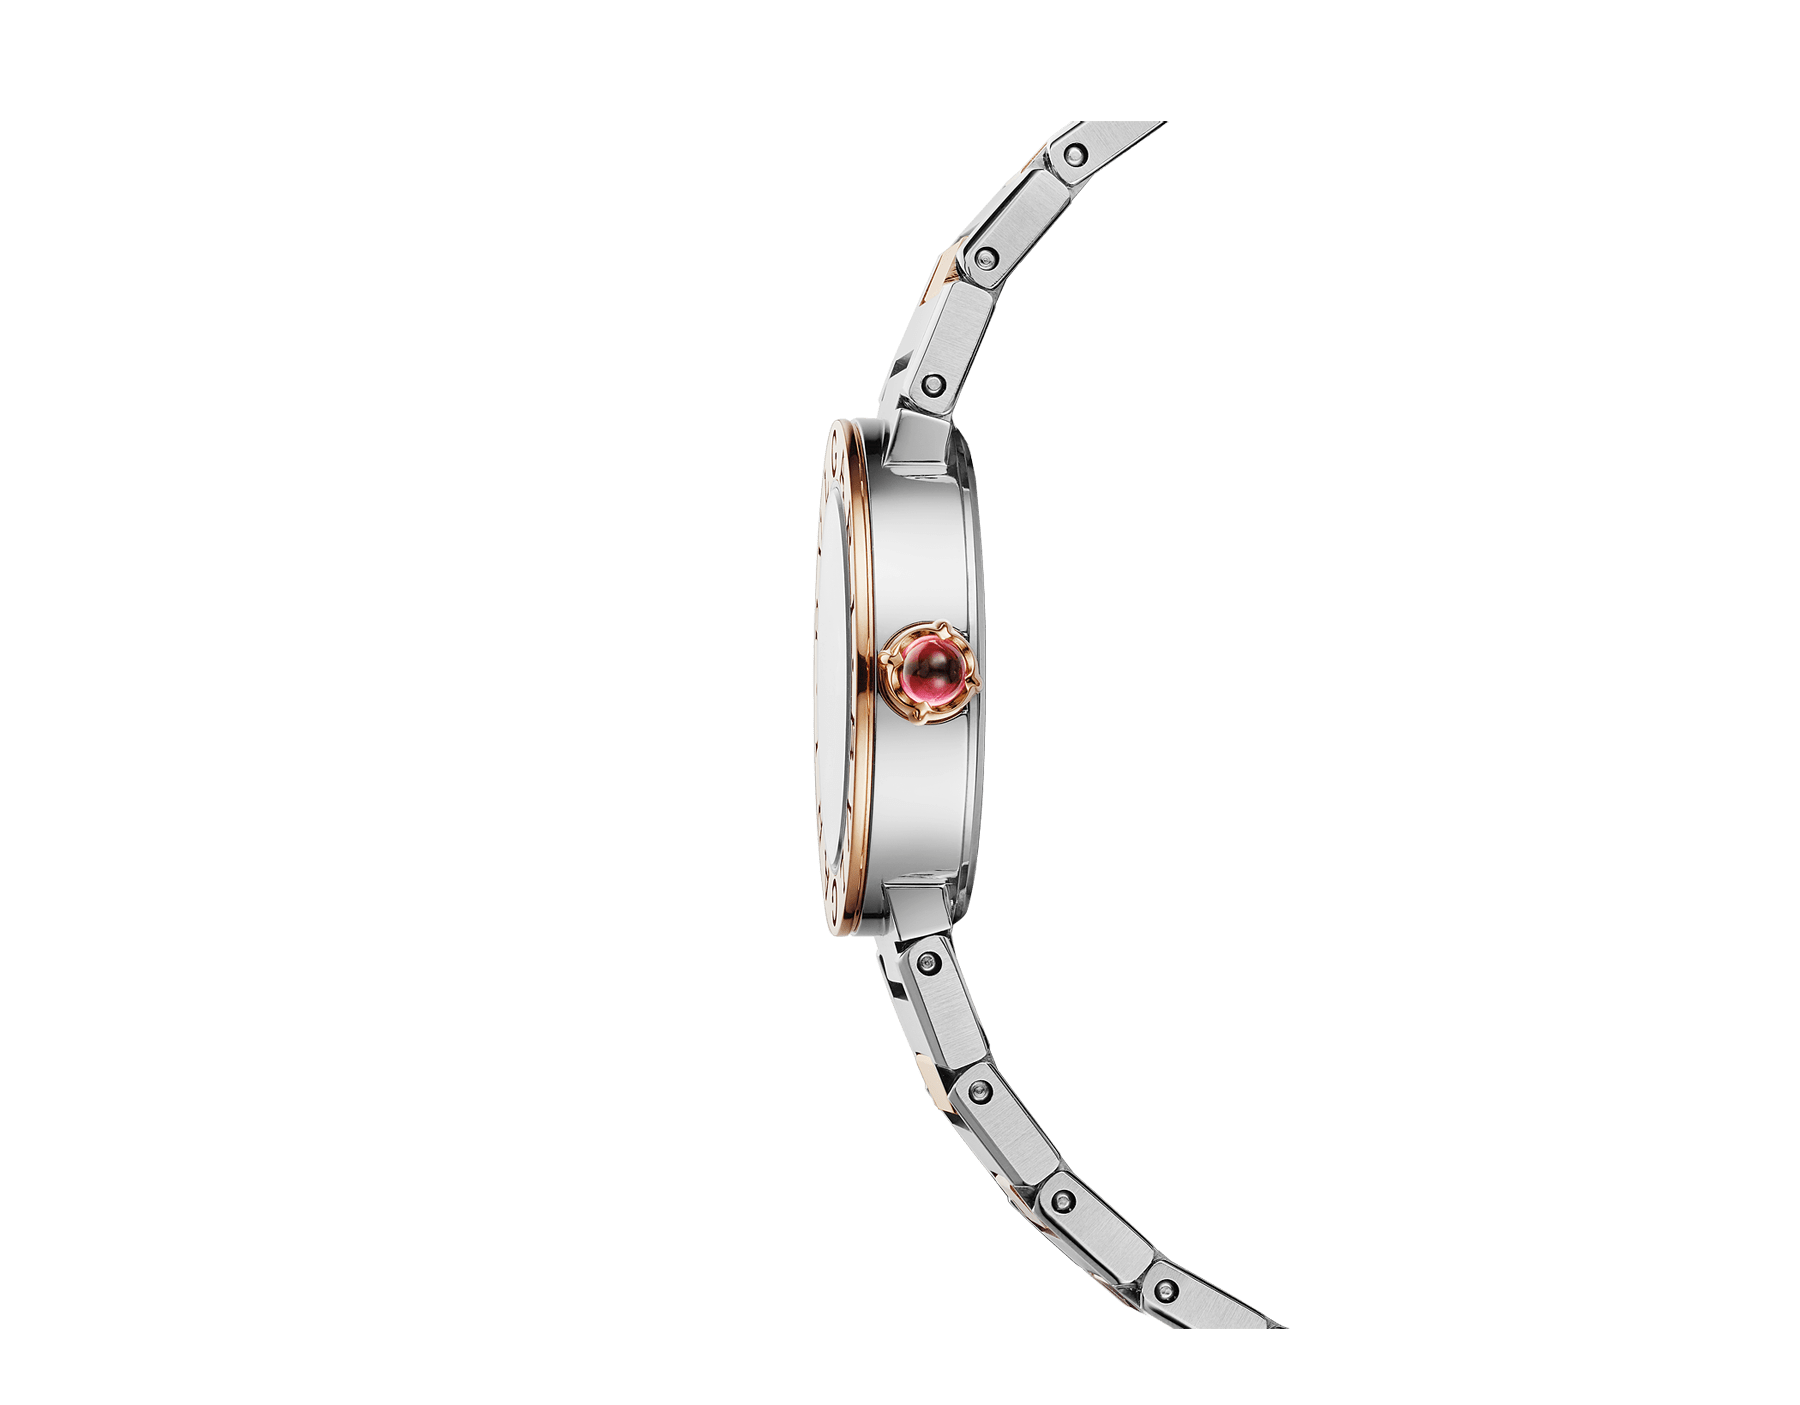 BVLGARI BVLGARI LADY watch with stainless steel case, 18 kt rose gold bezel engraved with double logo, white mother-of-pearl dial, diamond indexes and 18 kt rose gold and stainless steel bracelet 102970 image 2